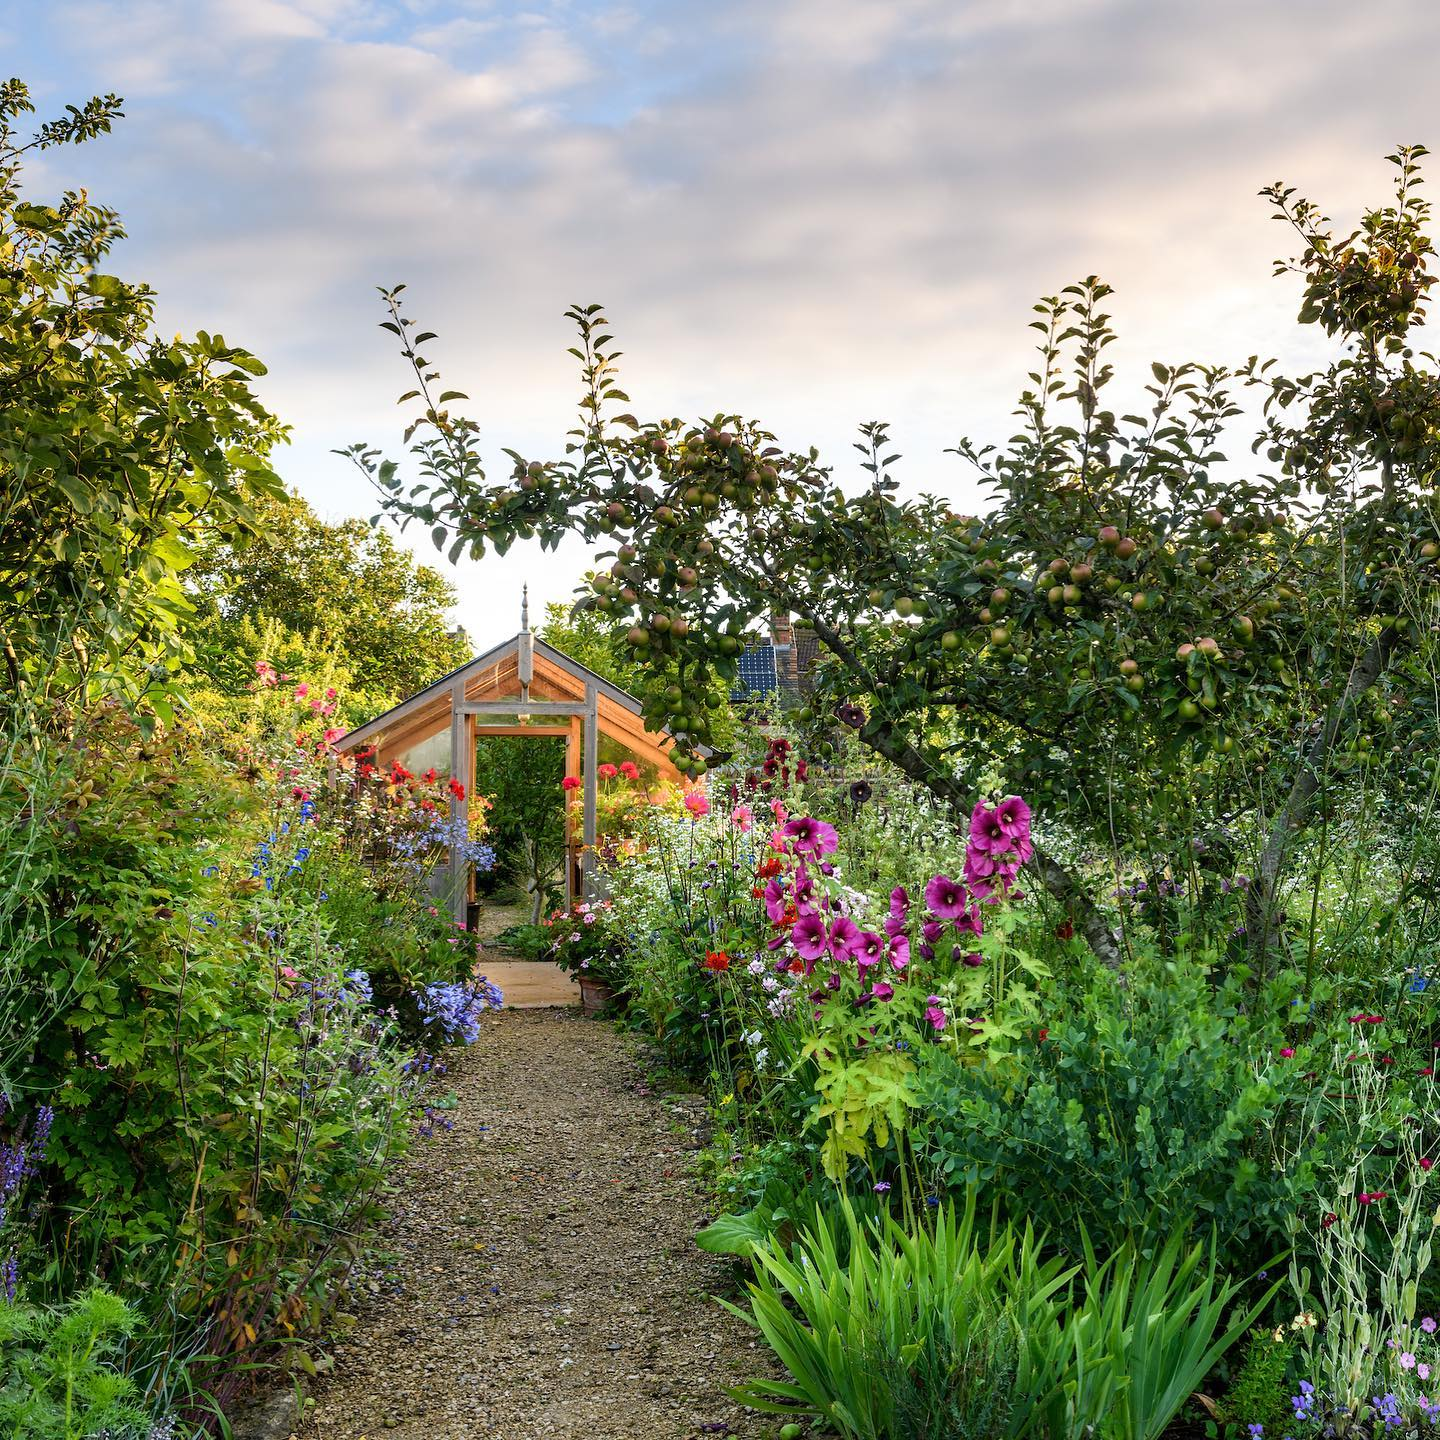 Mary Keen's beautiful garden shot for @gardens_illustrated , great article by @nonmorrisgardens...#gardensillustrated #gardenphotography #gardenphotographer #englishgardens #summergarden #nikonphotography #nikonphoto #nikonphotographer